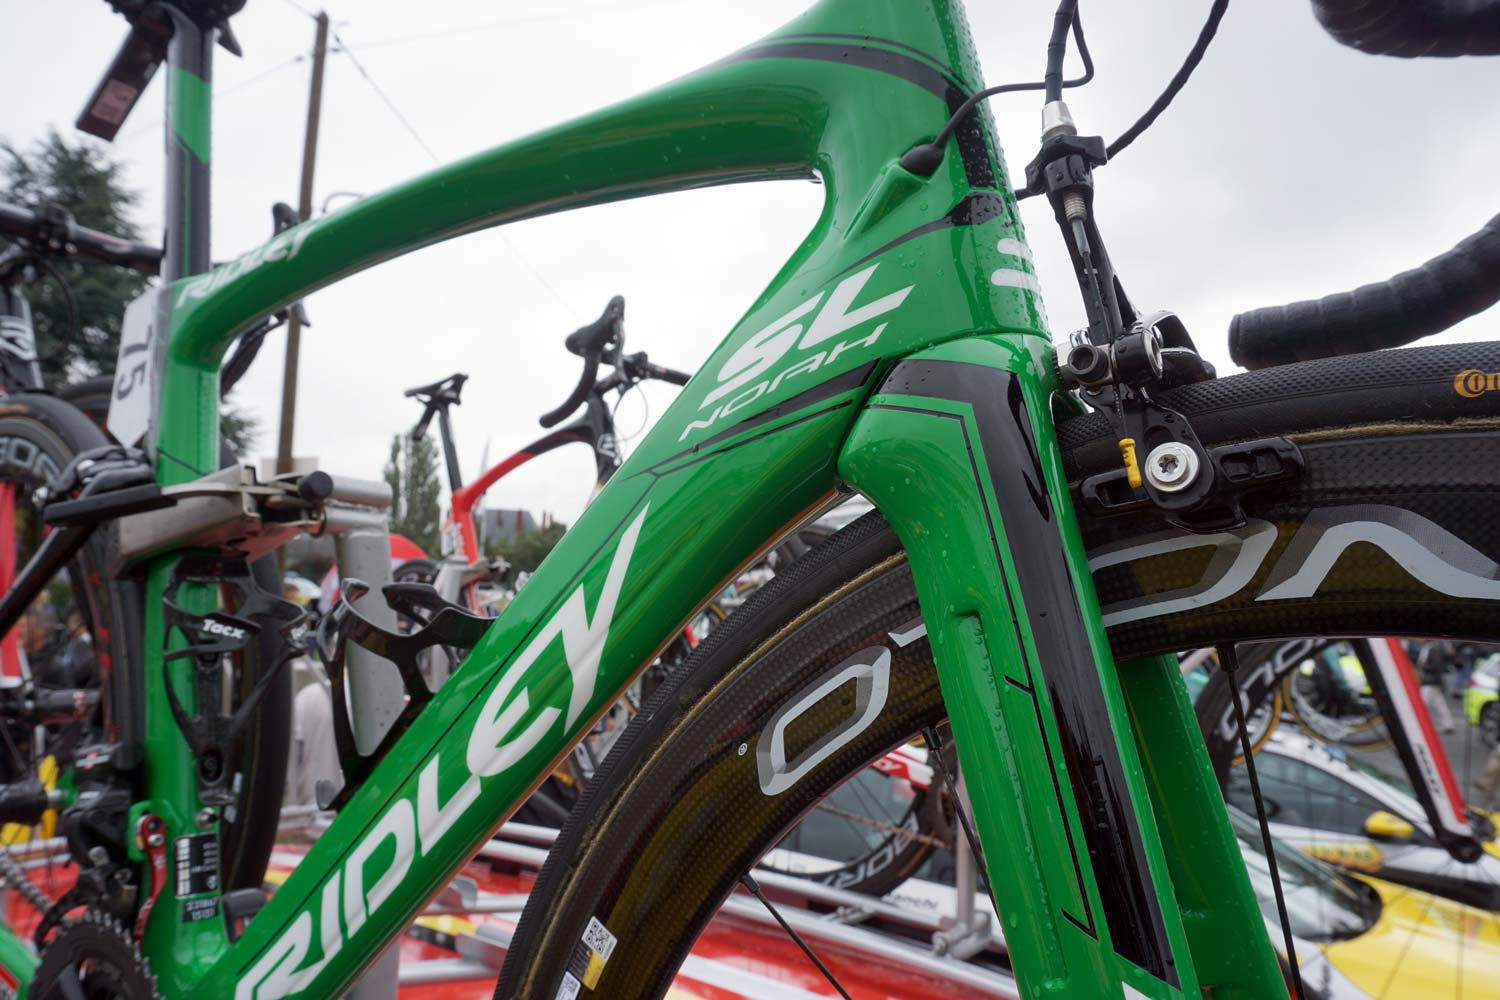 The Ridley Noah created for André Greipel for the days he spent racing in the green jersey at last year's Tour de France.